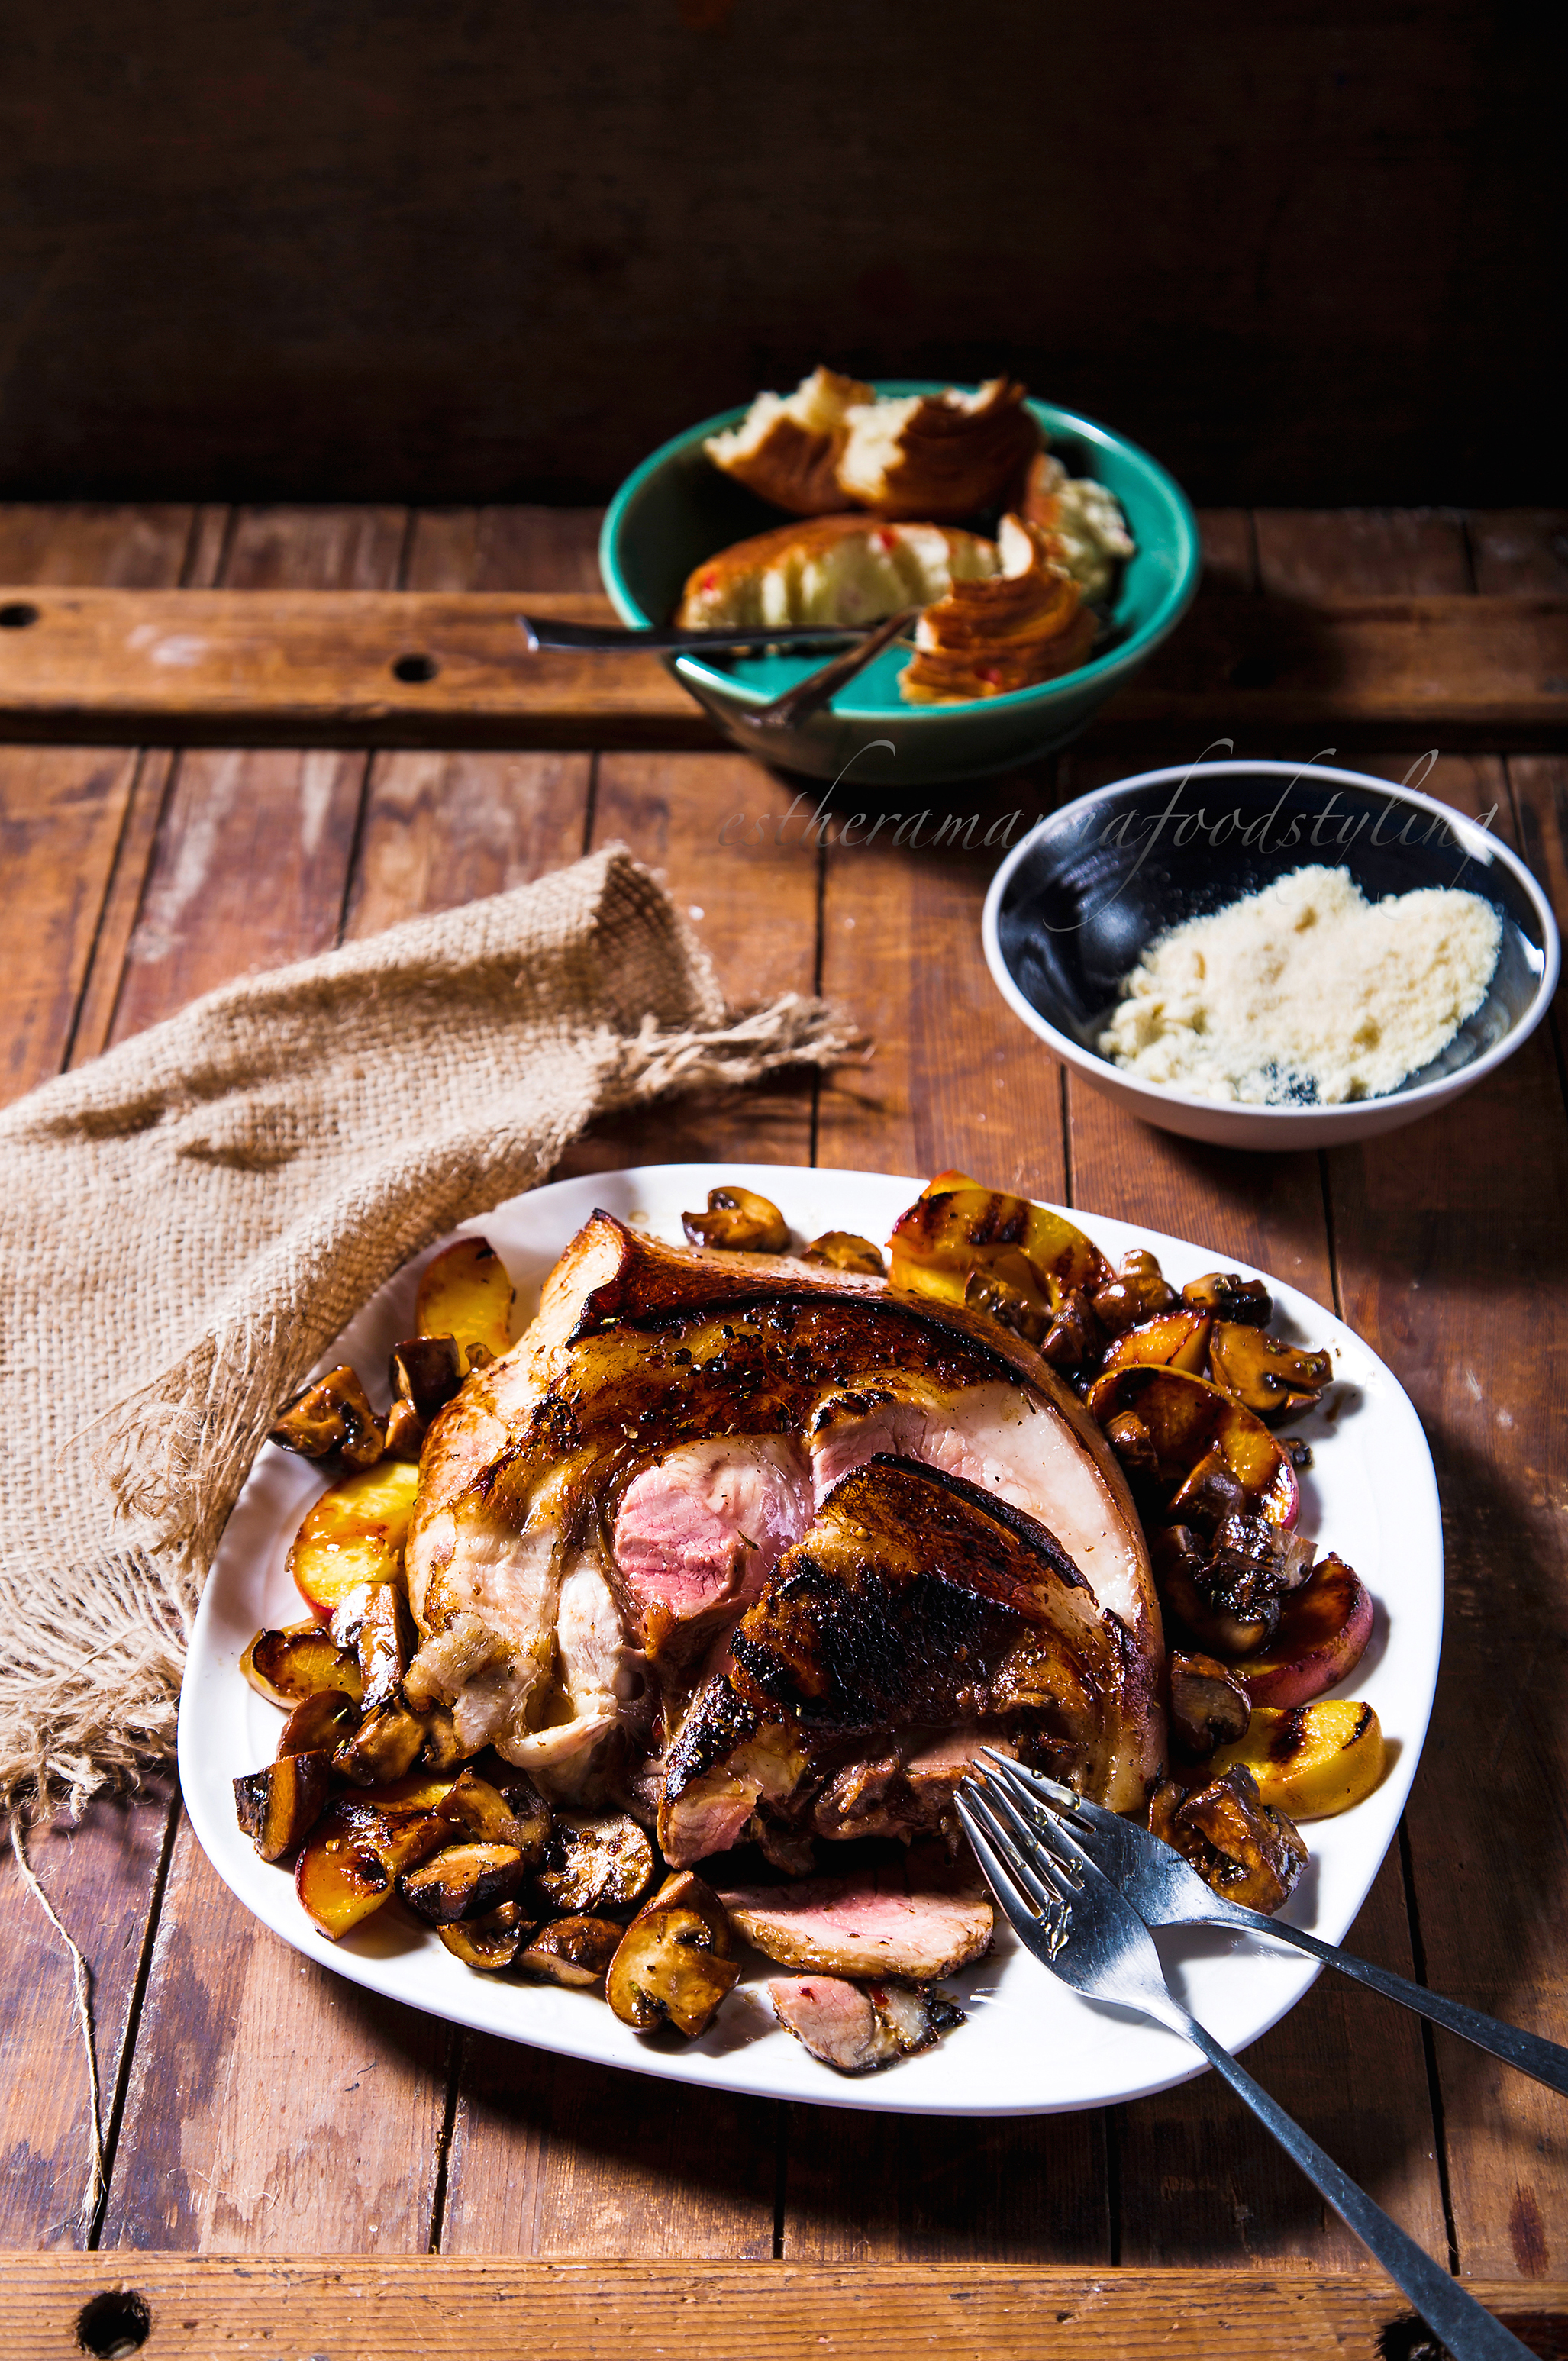 Rustic food ,Pork with Earthy flavours of Mushrooms,Food styling